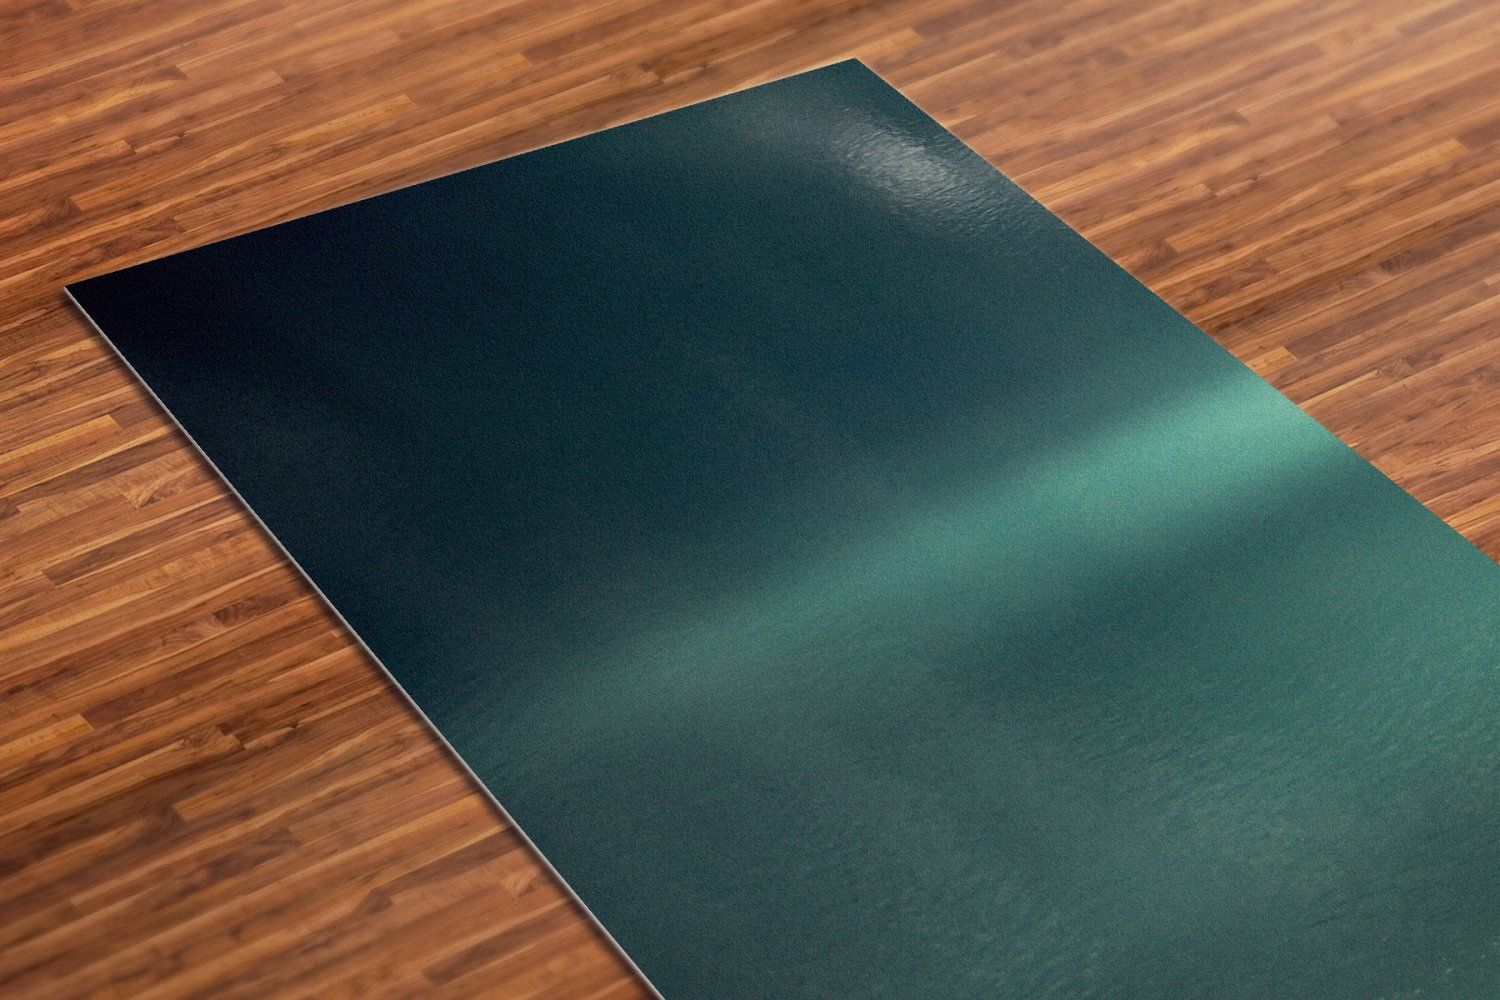 Green Printed Yoga Mat Thick 5 mm 24 x 72 Pilates Decor Rug Gift Fitness and Exercise Meditation